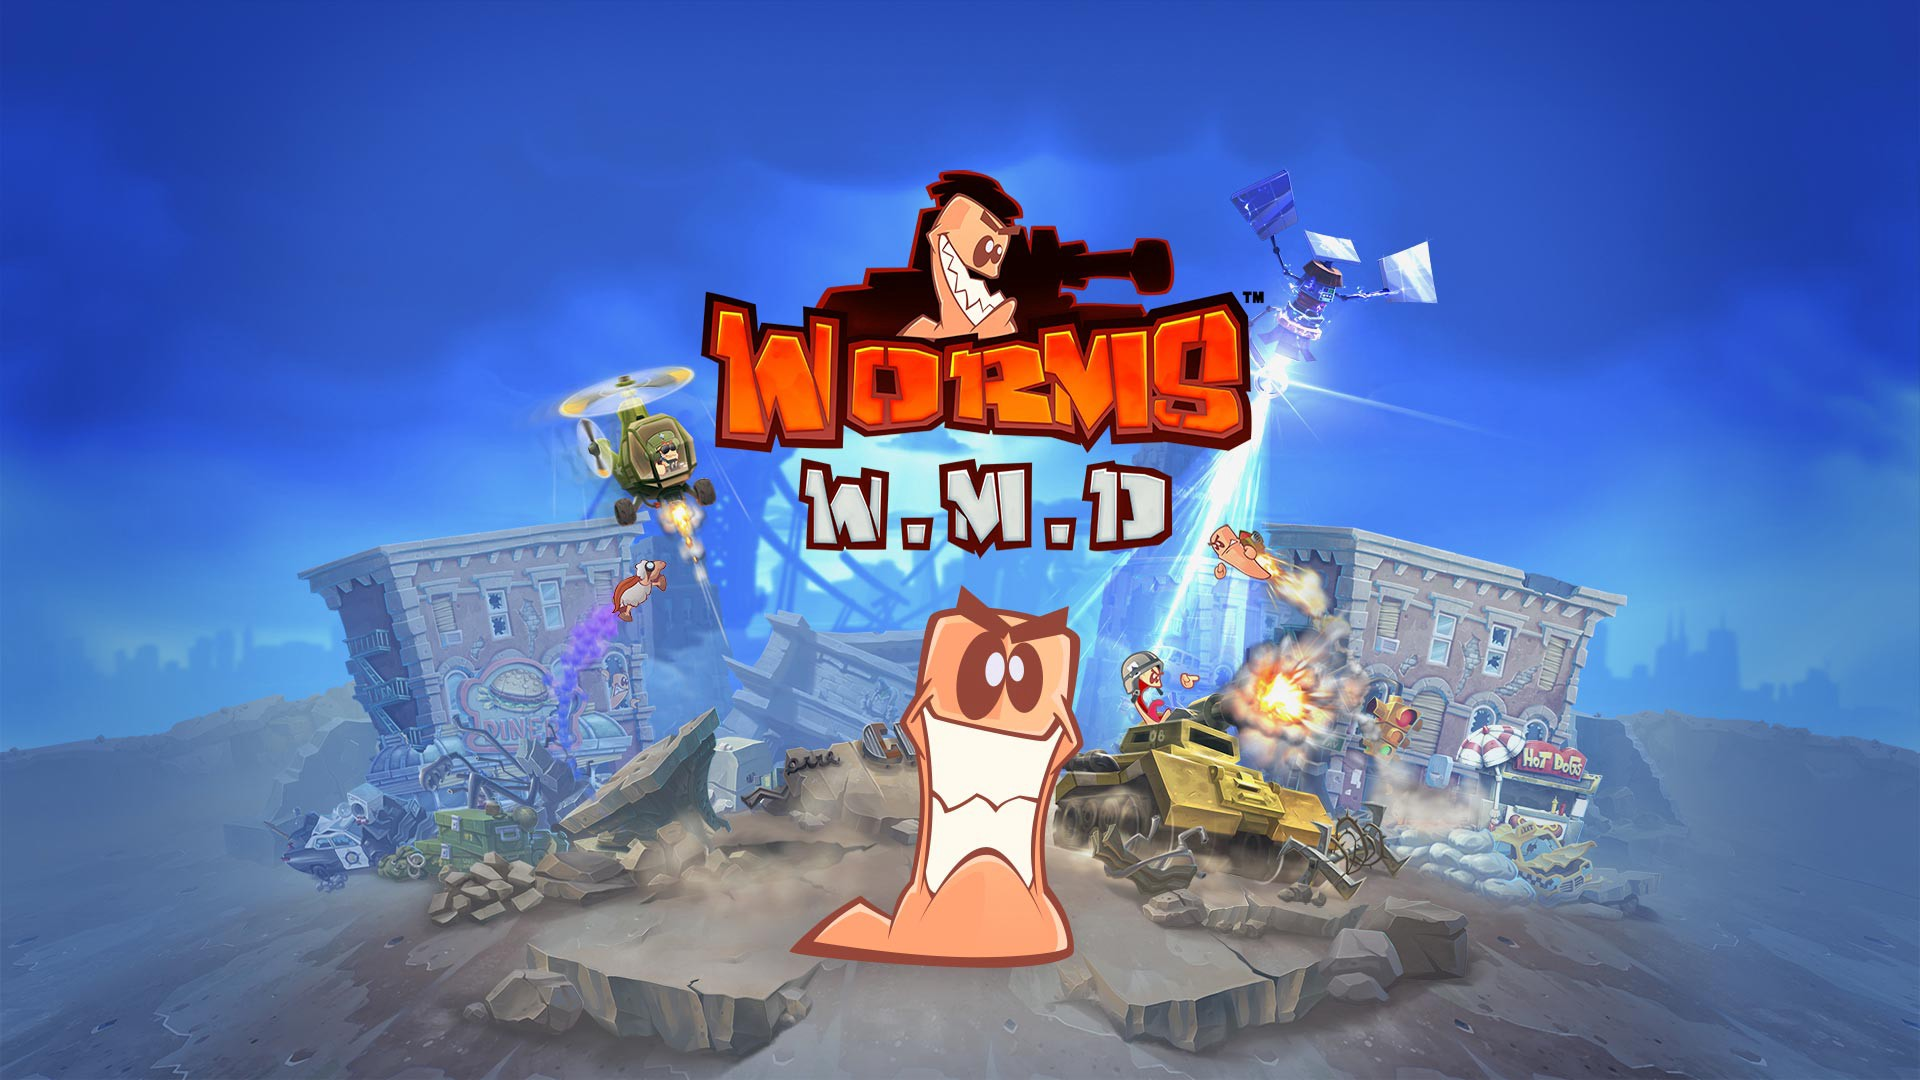 An image of the Worms W.M.D logo.